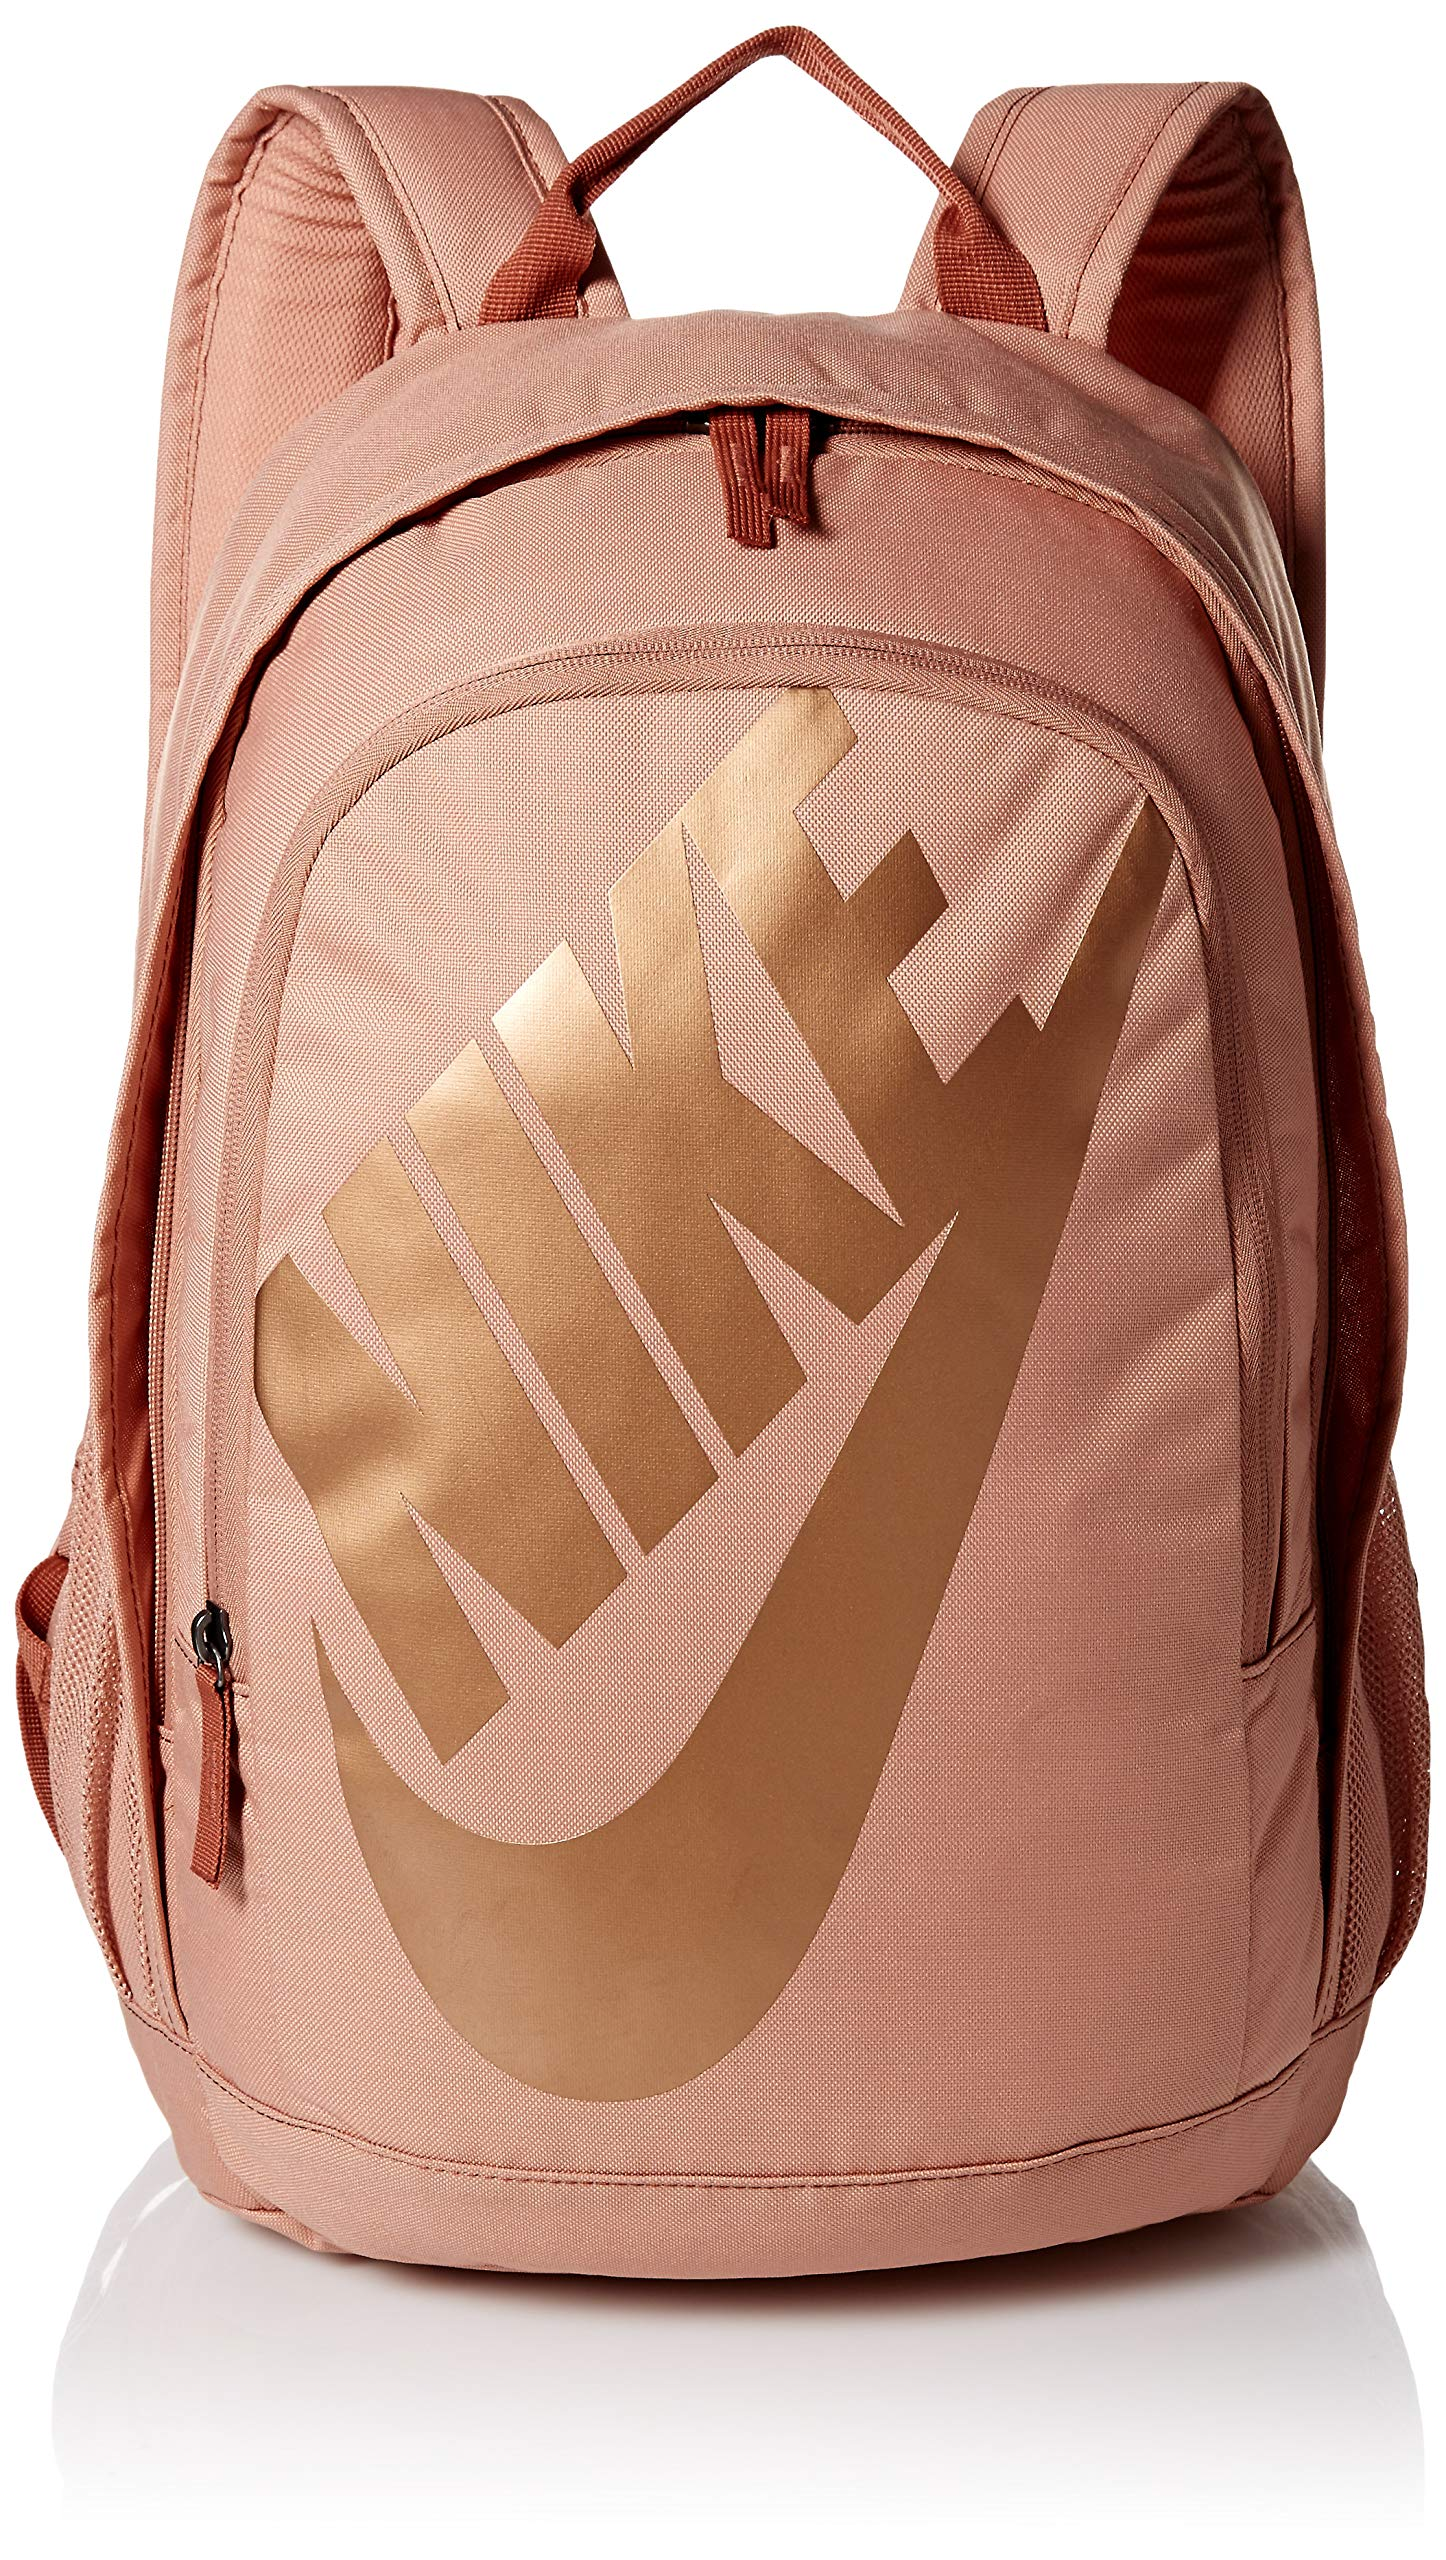 394be9a9fc9b2 Nike Sportswear Hayward Futura Backpack for Men, Large Backpack with  Durable Polyester Shell and Padded Shoulder Straps, Rose Gold/Dusty  Peach/Metallic Red